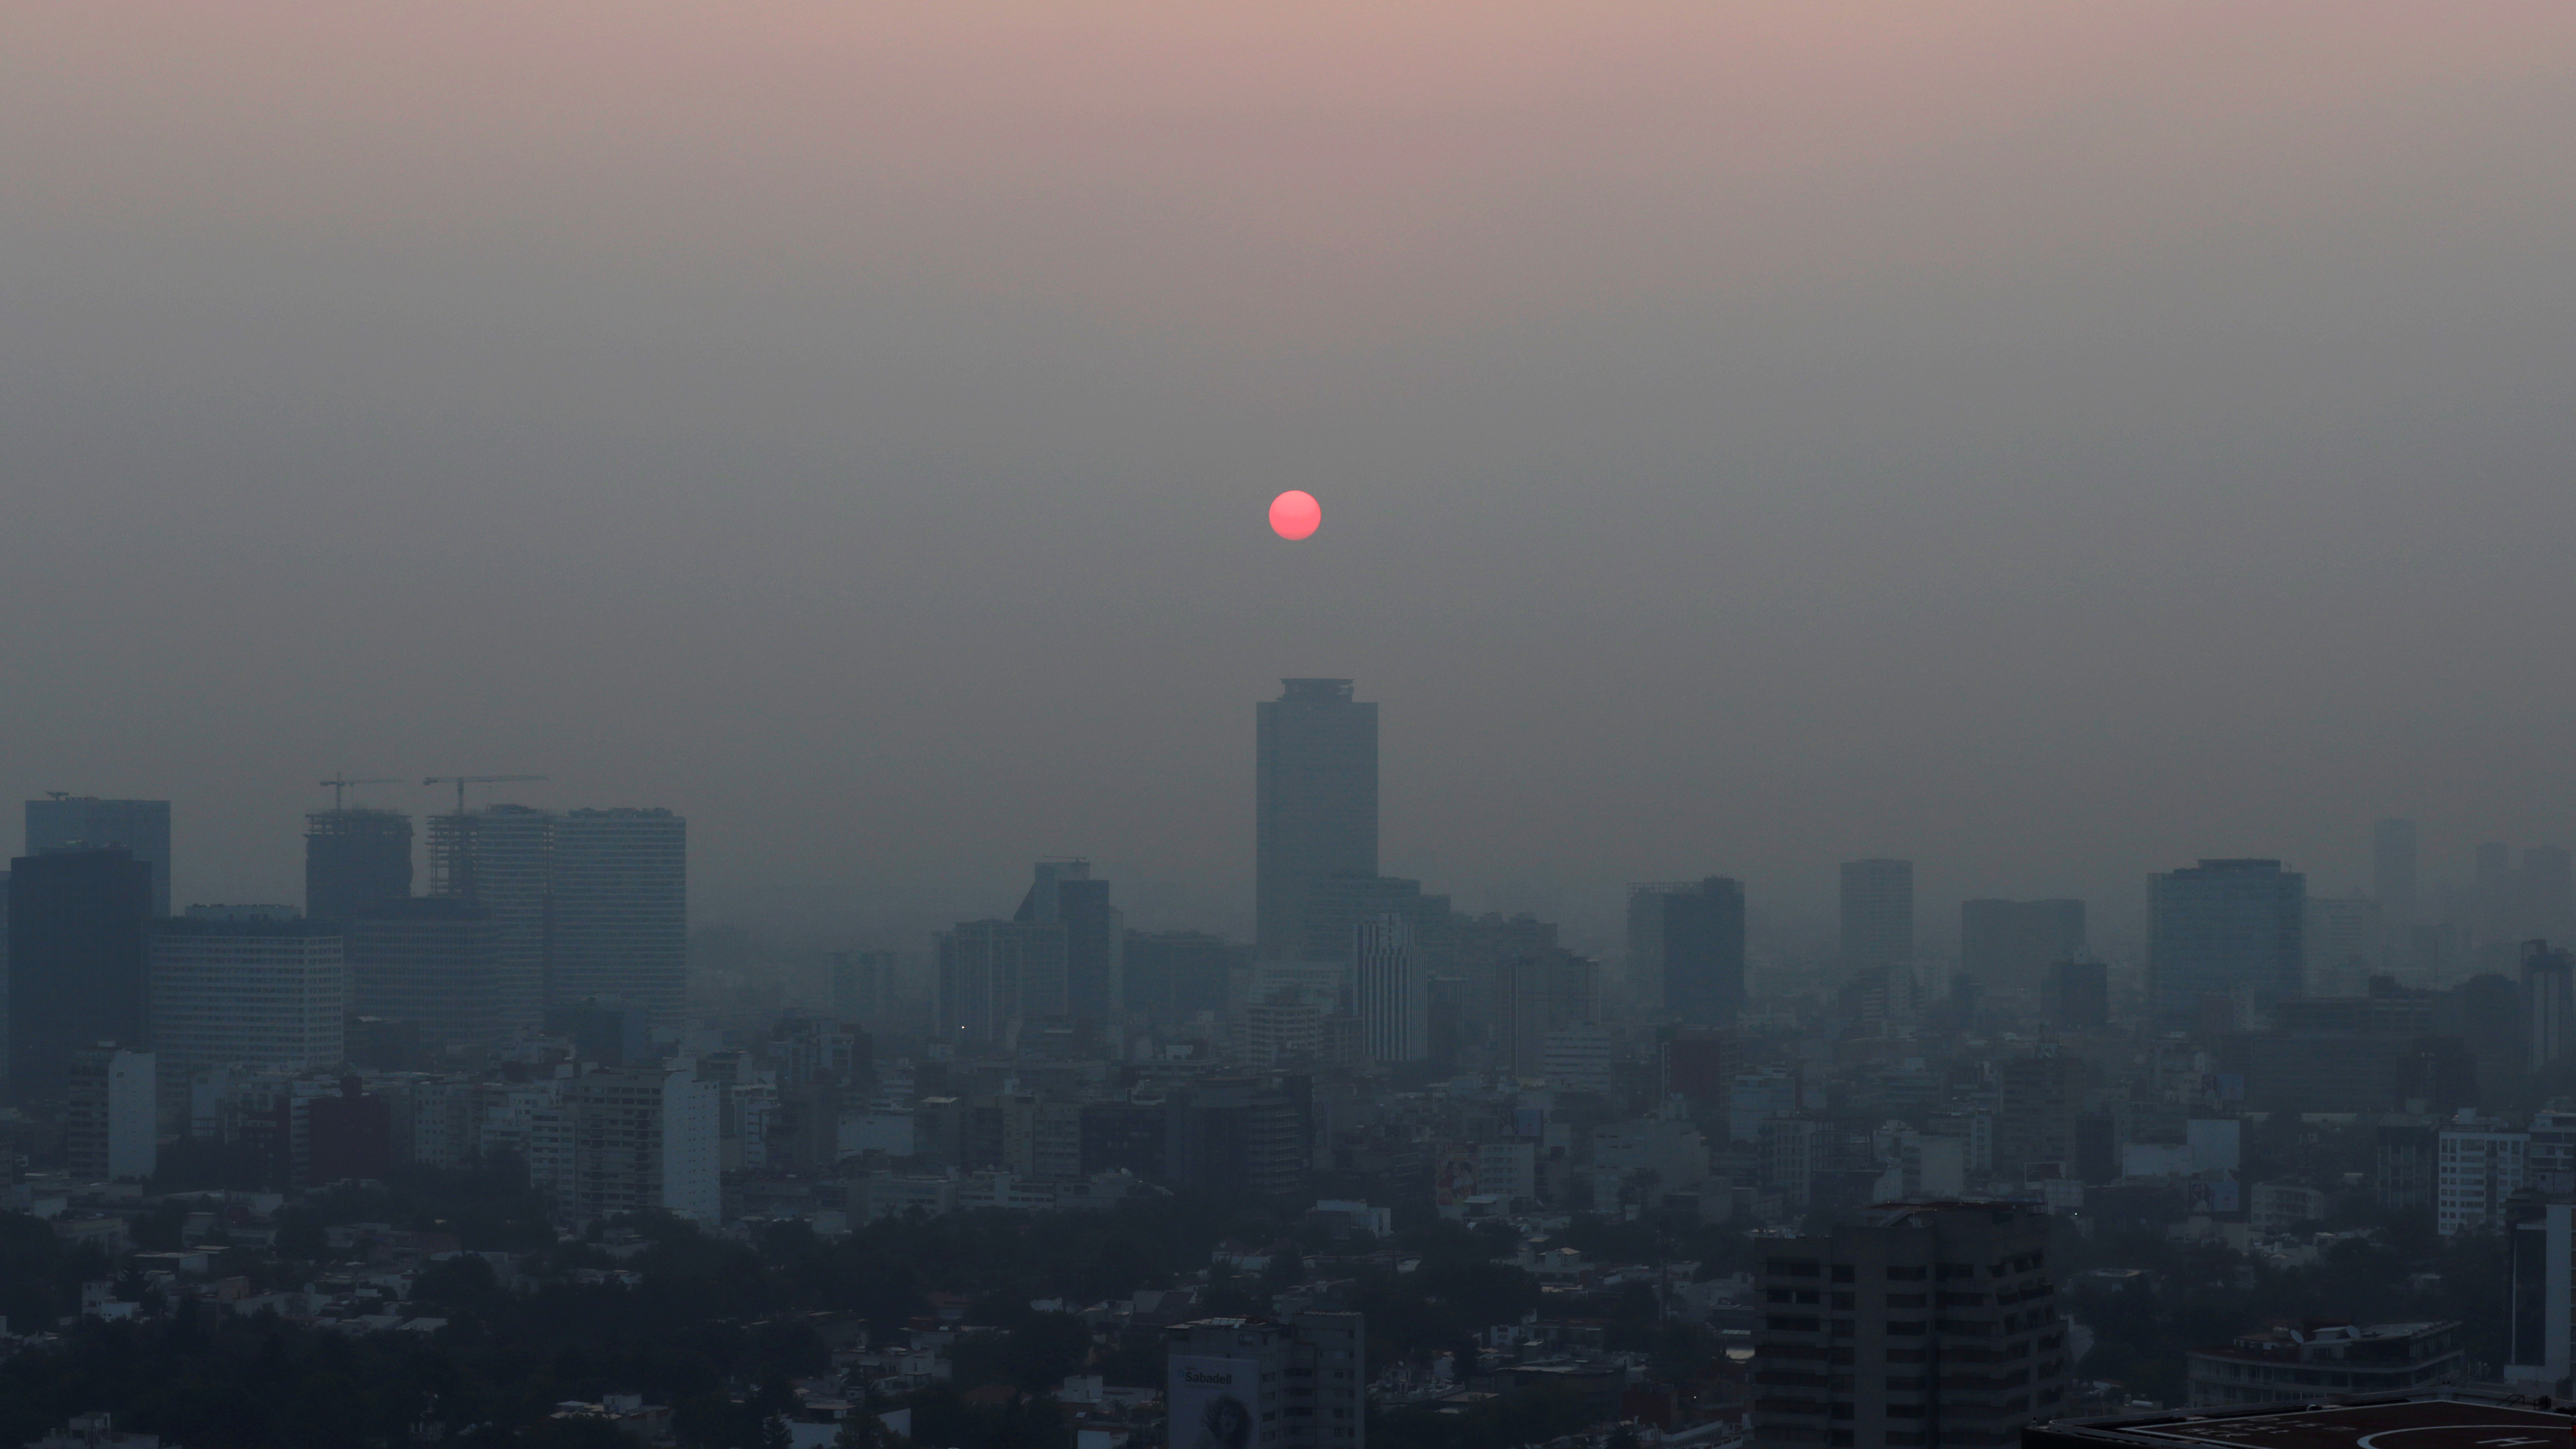 Buildings shrouded in smog with a red orb in the sky